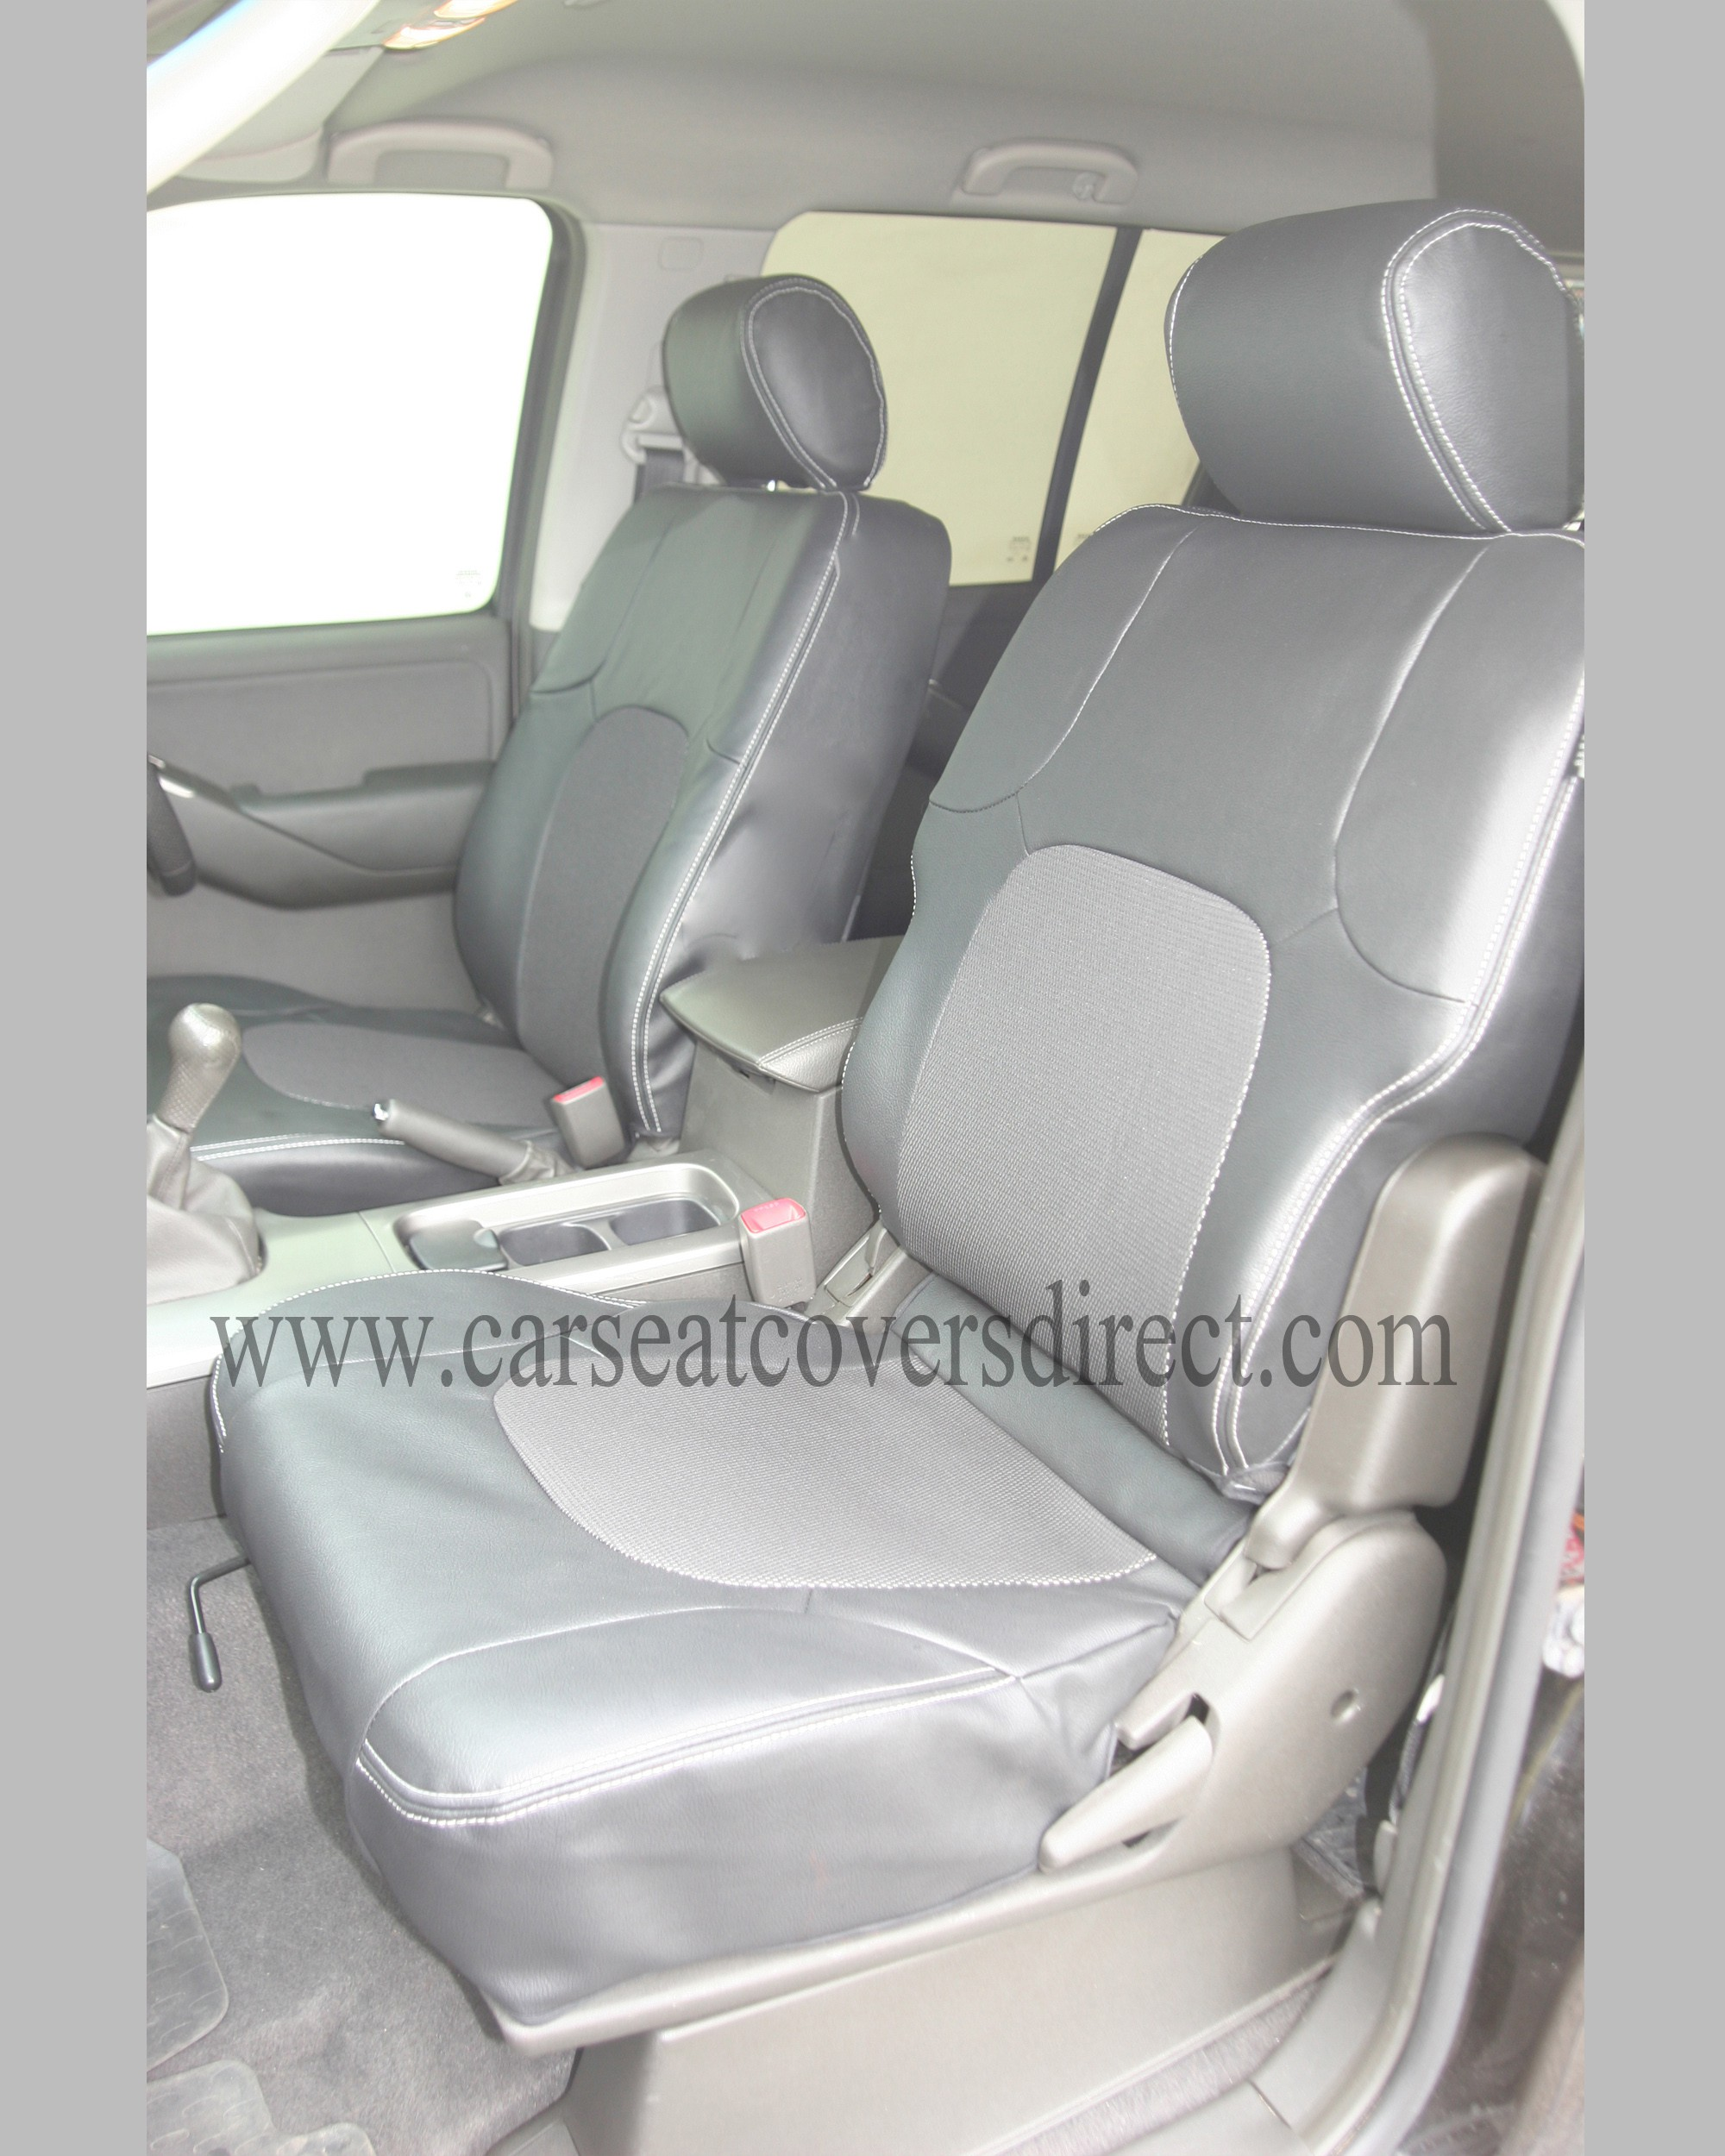 NISSAN PATHFINDER Family Pack Seat Covers 5 seats including Leather stitching and logos.